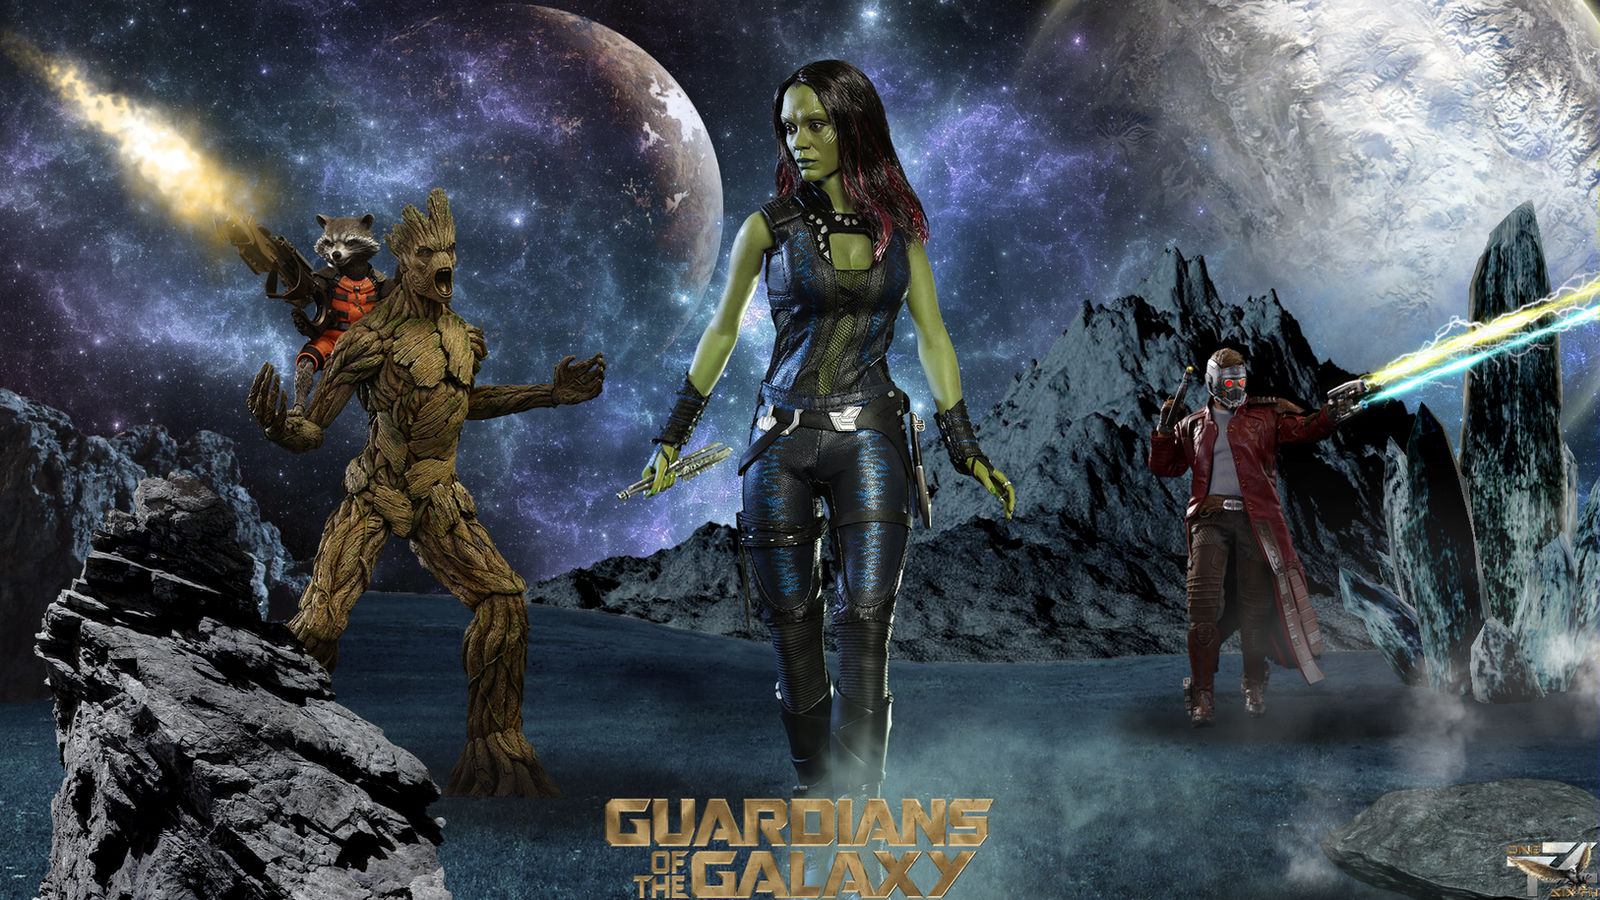 Guardians Of The Galaxy Hot Toys Hd Wallpaper By Davian Art On